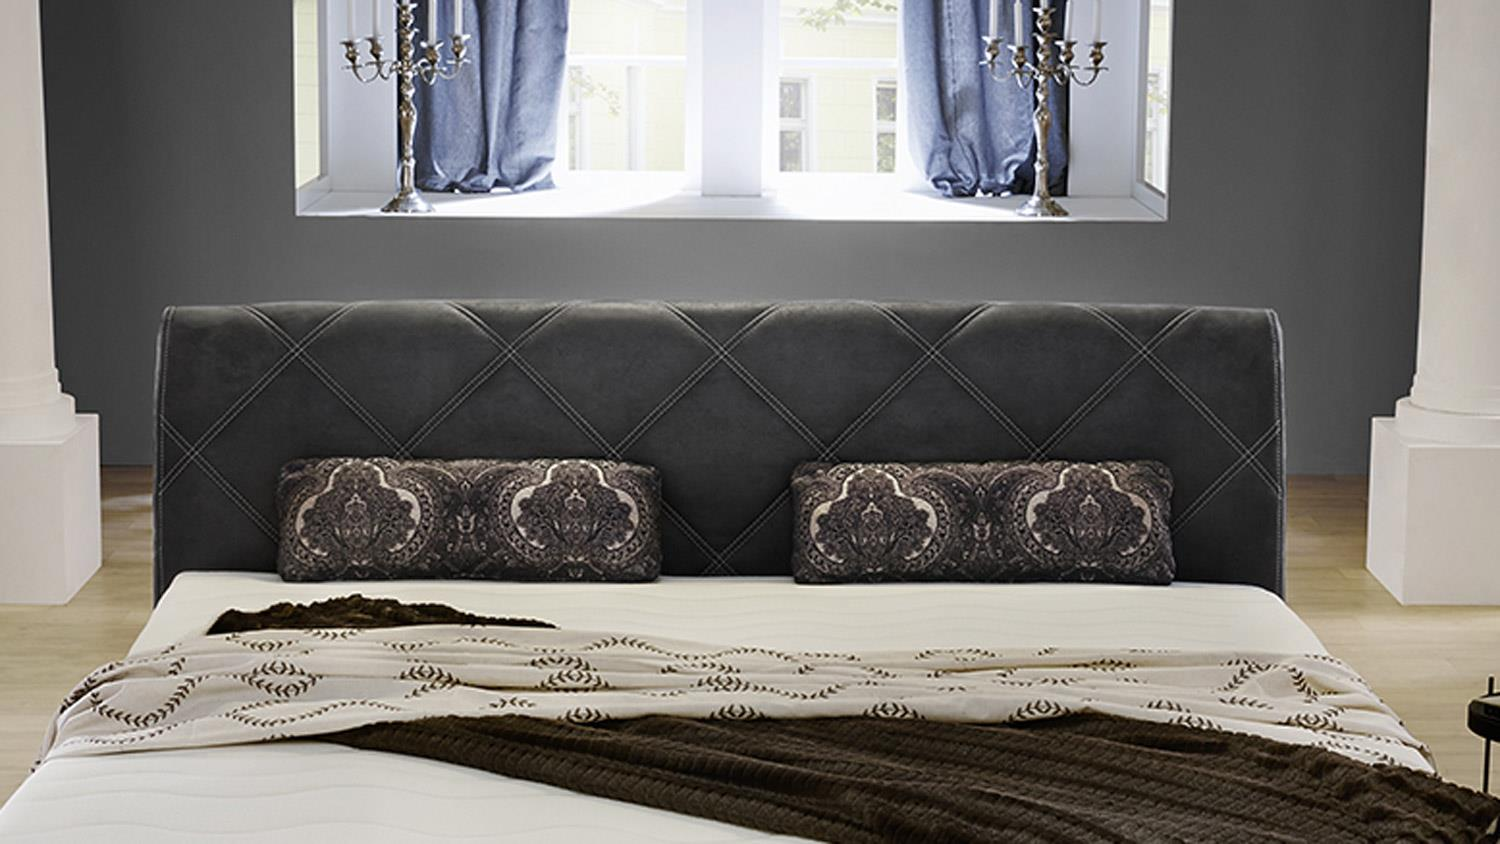 boxspringbett rebecca schlafzimmer bett antikoptik grau mit topper 180. Black Bedroom Furniture Sets. Home Design Ideas